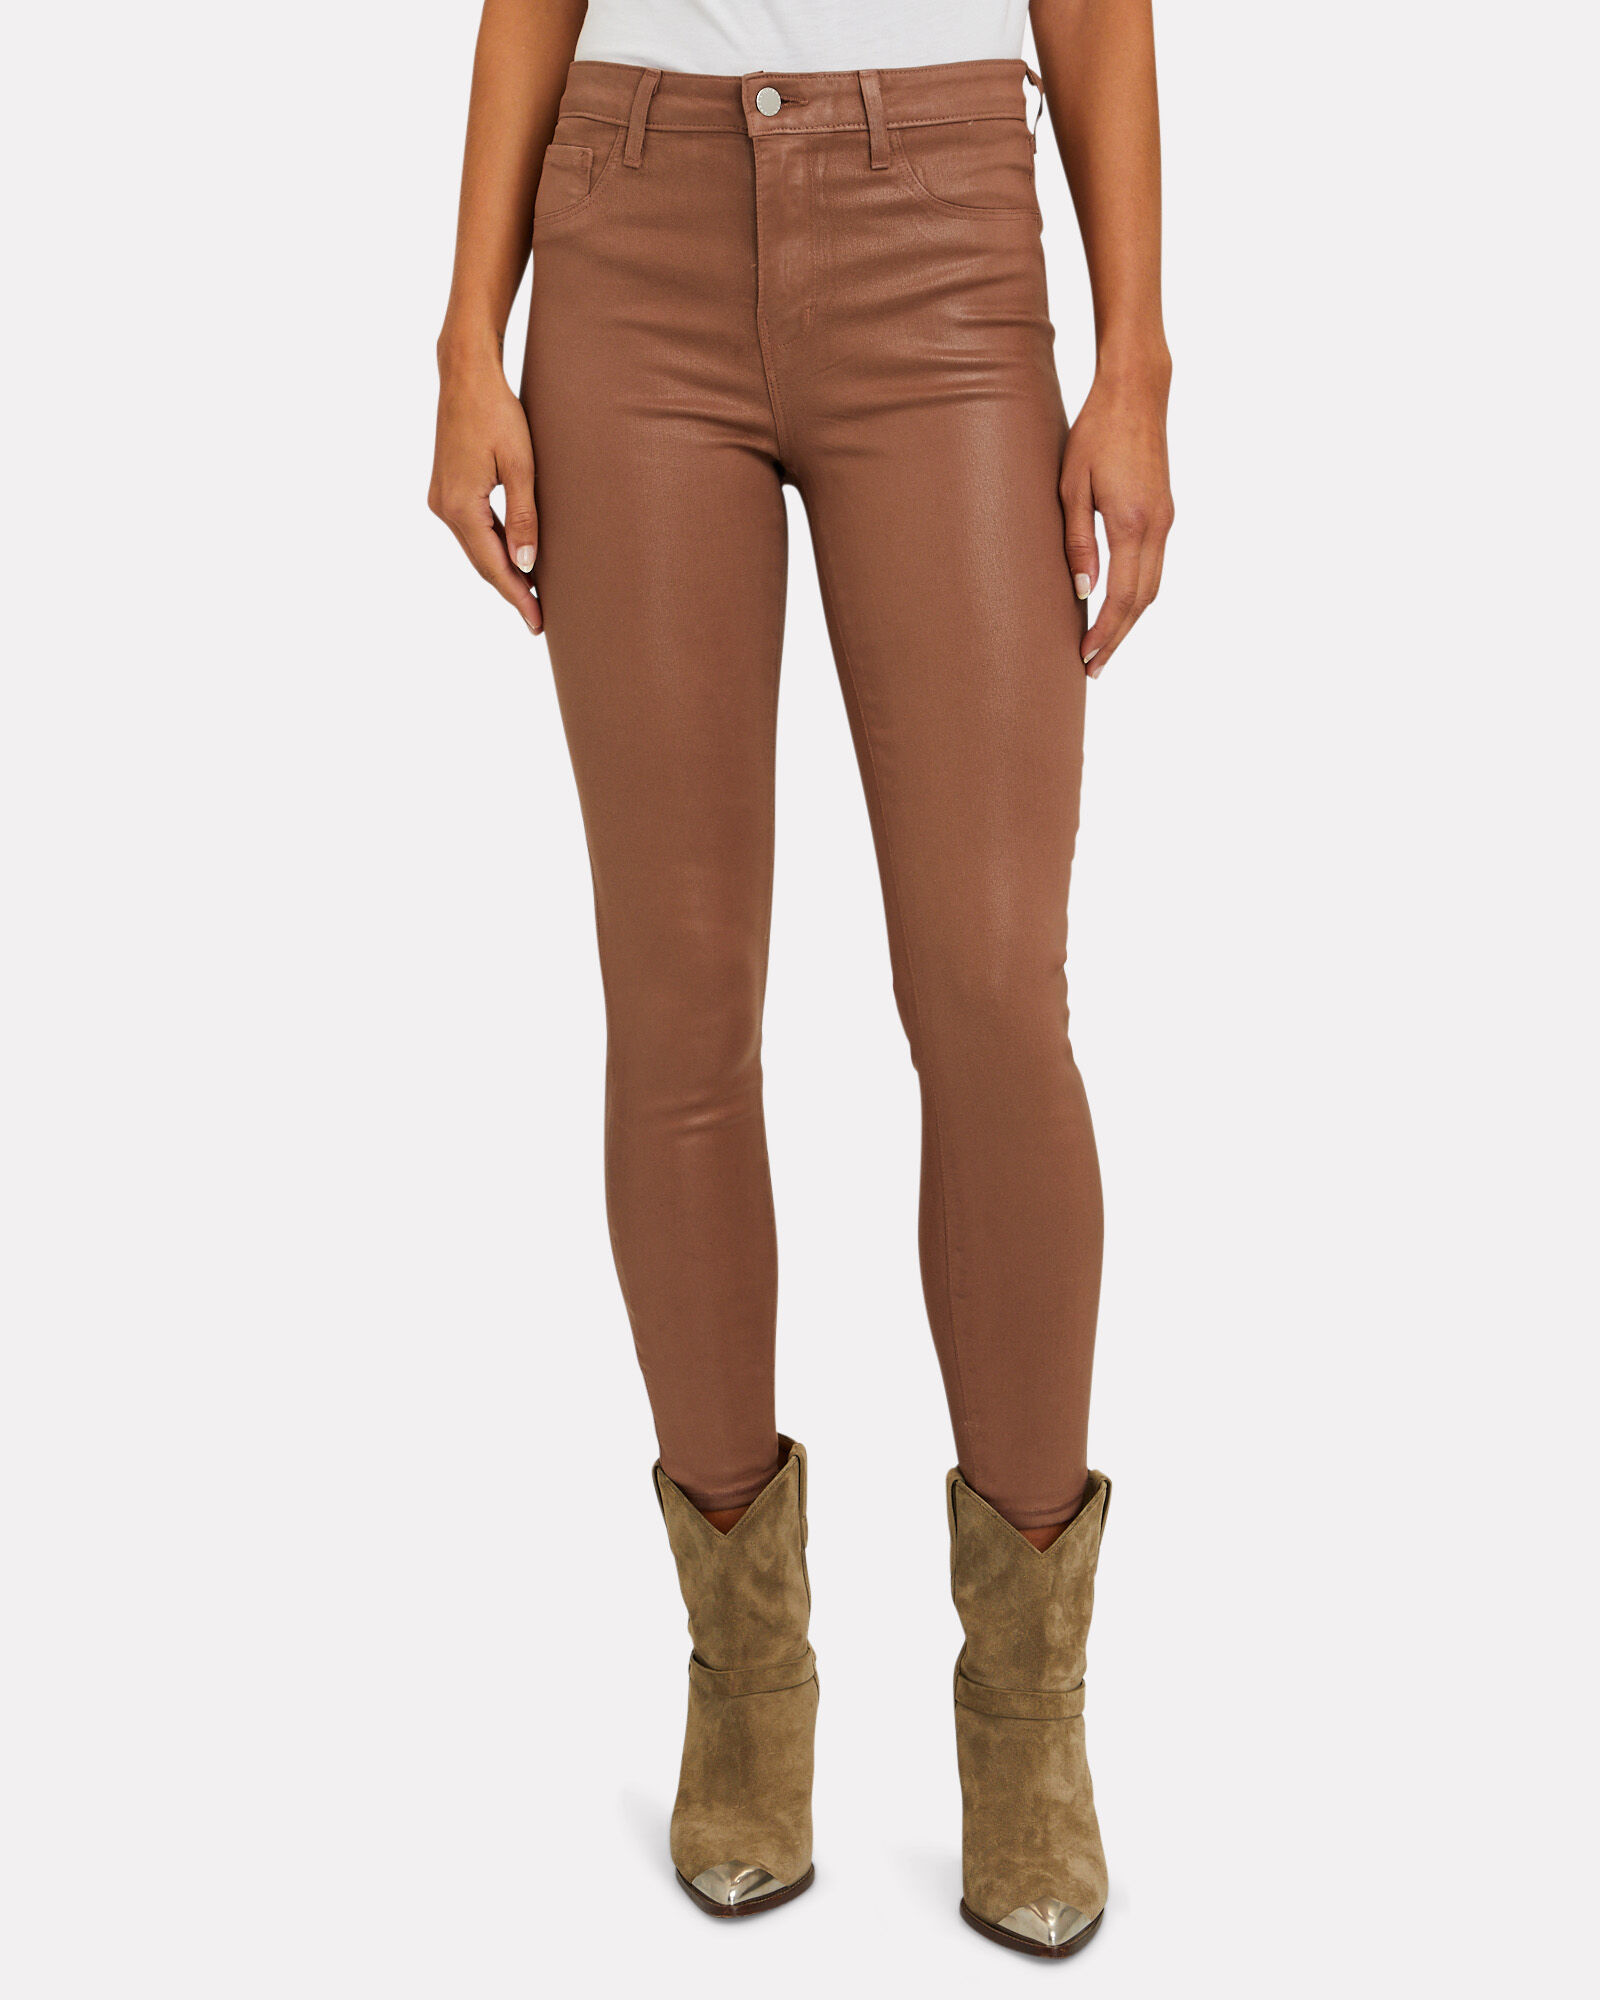 Margot Coated Skinny Jeans, Sparrow, hi-res